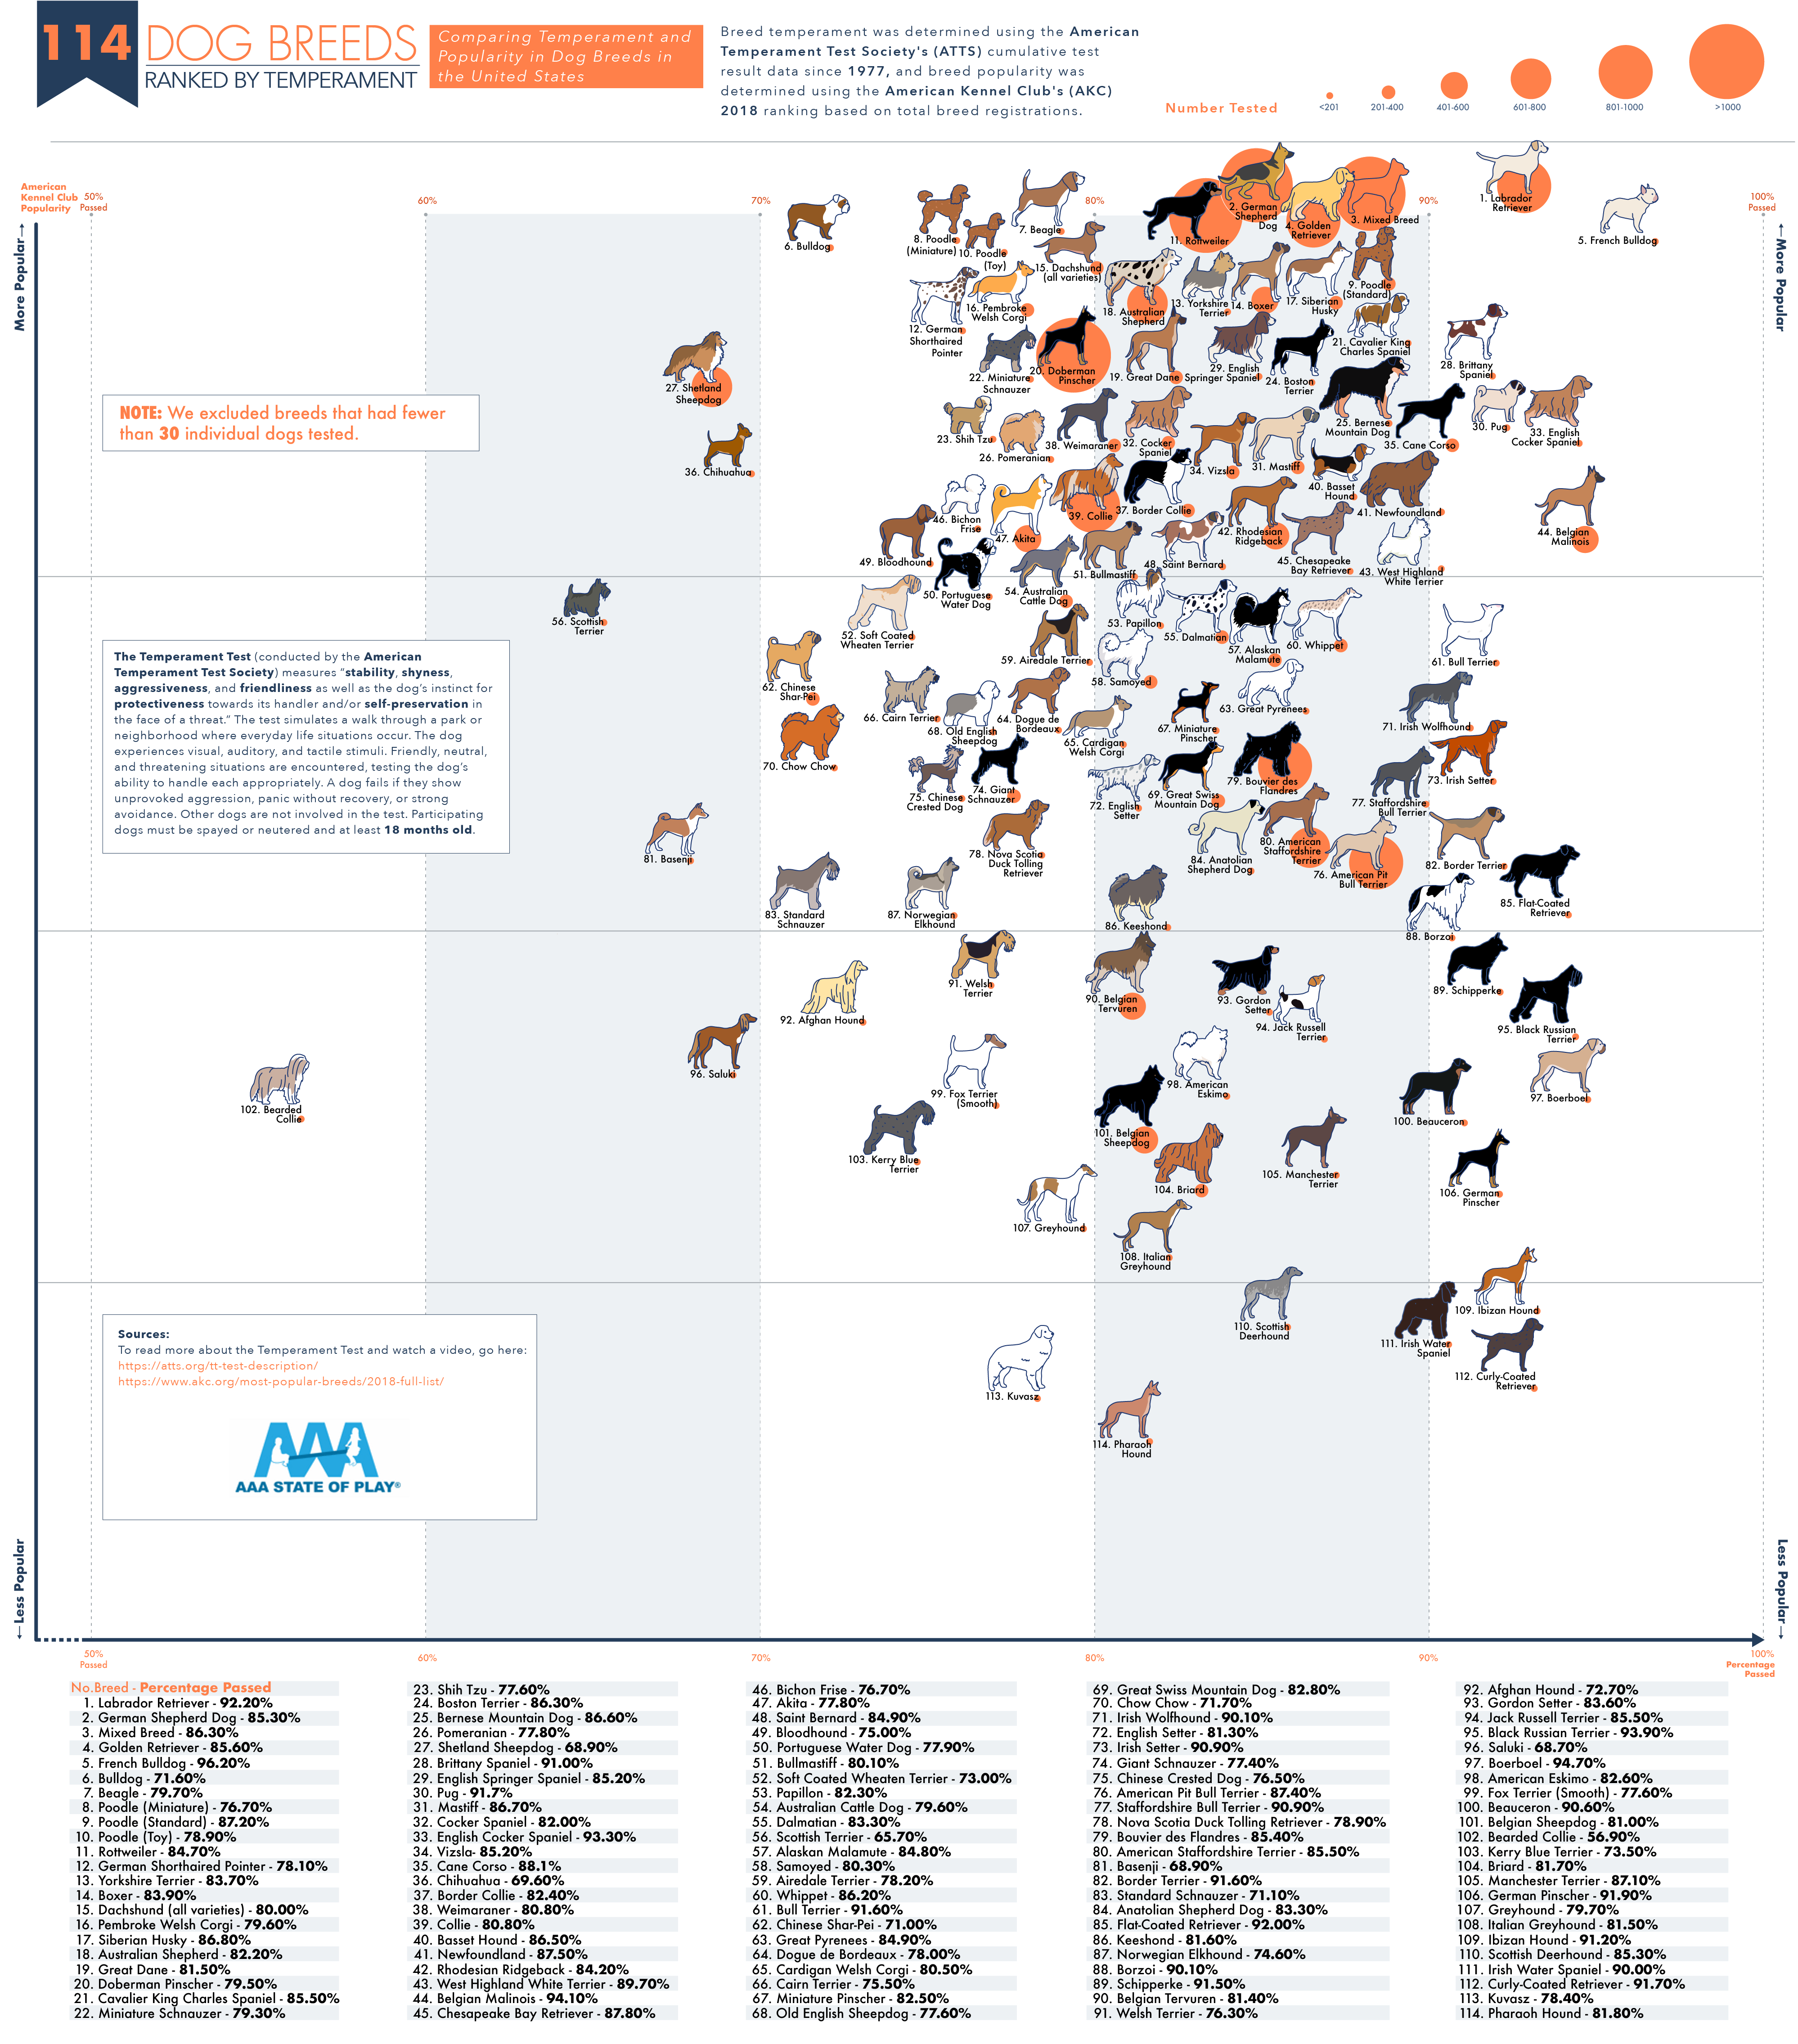 Reference Map of Different Dog-Breeds and Their Temperaments - Infographic